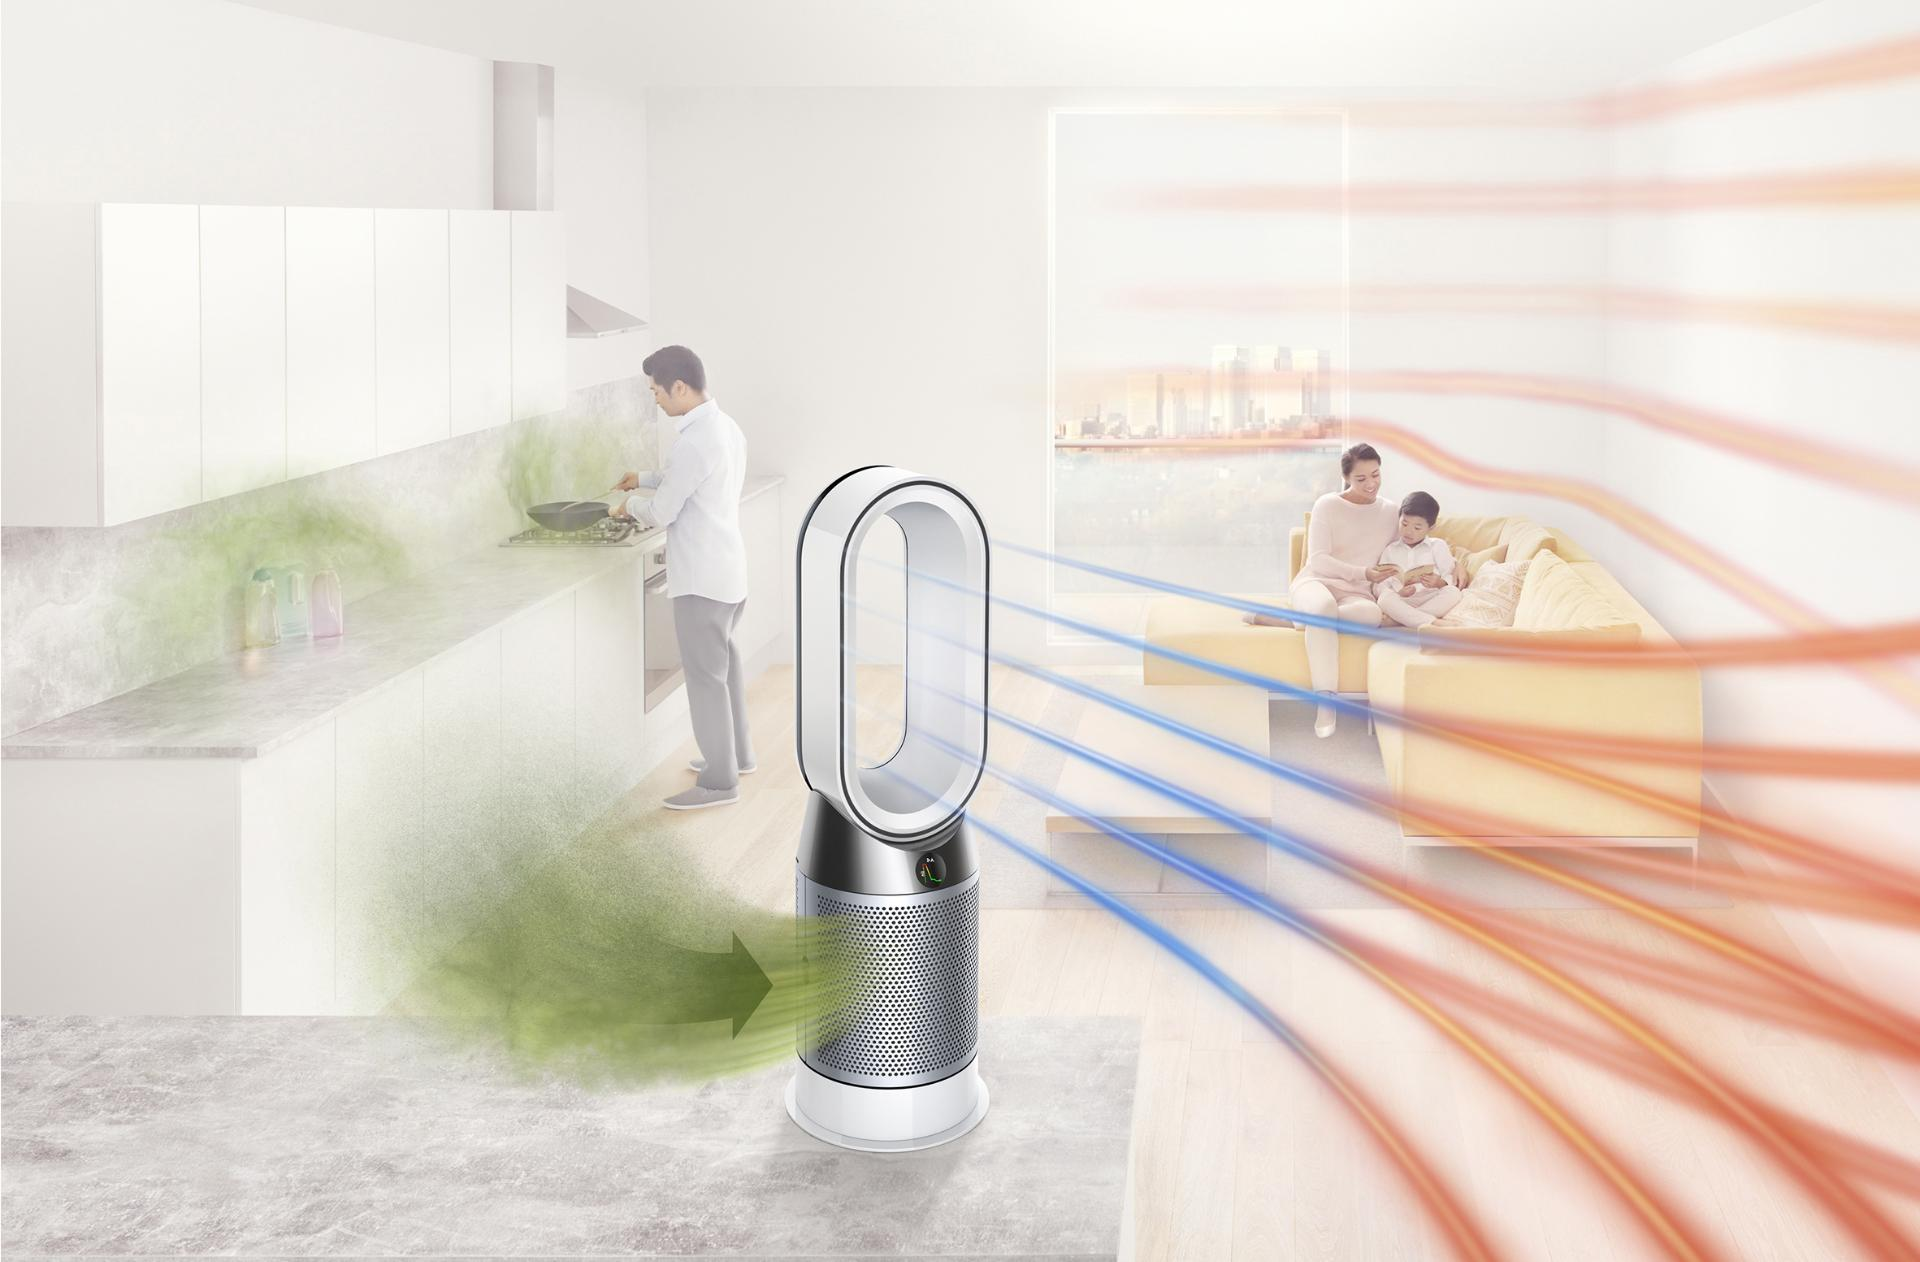 Dyson purifying fan heater capturing pollutants and projecting purified airflow throughout a room